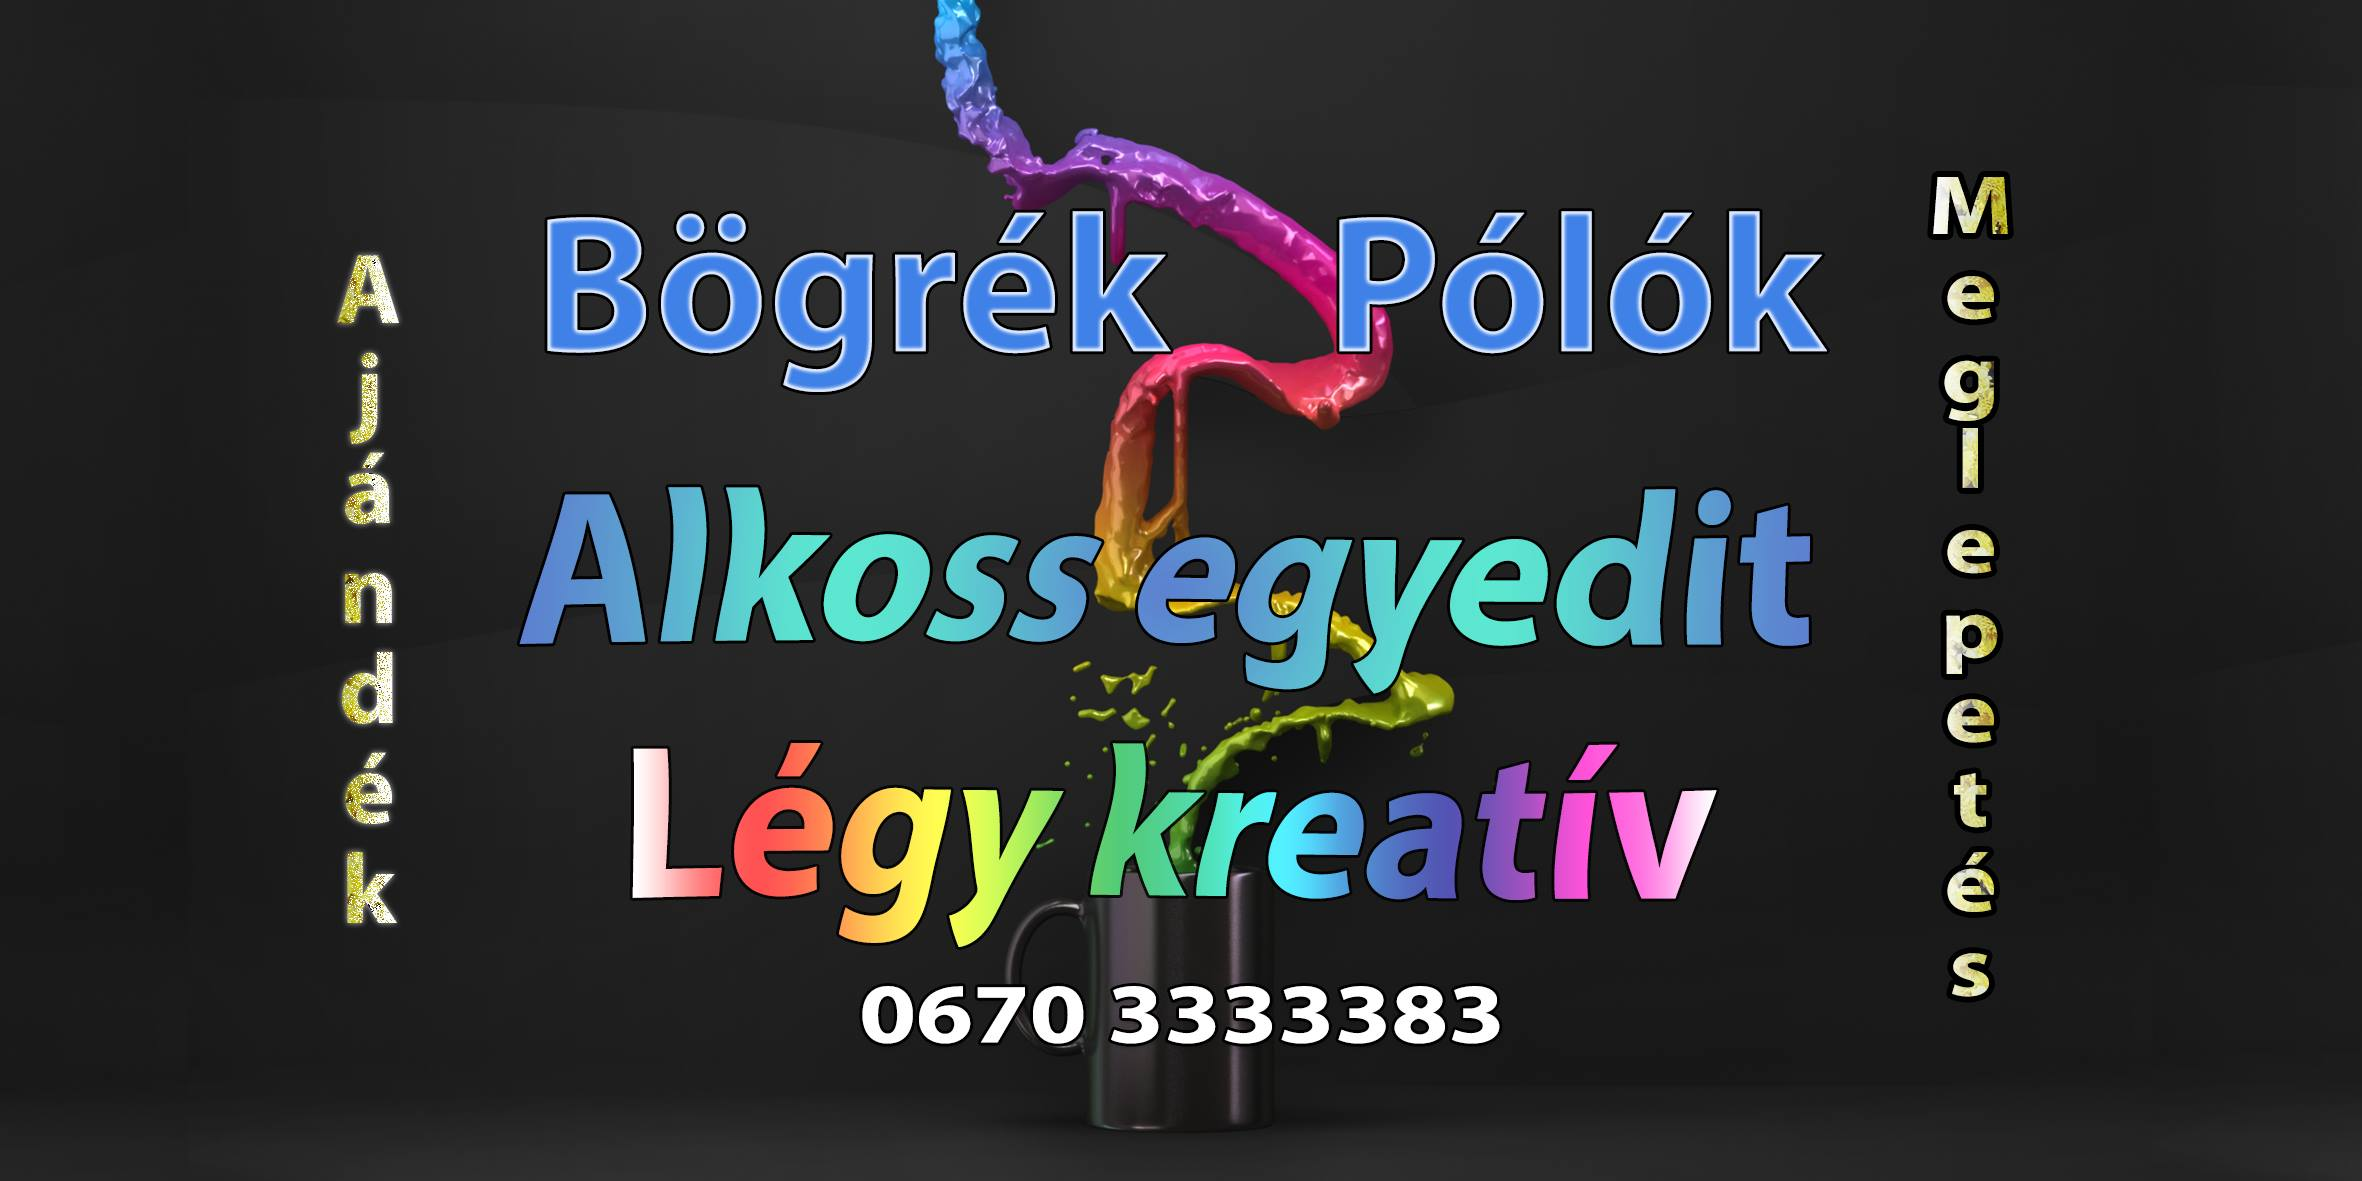 Alkossegyedit Page